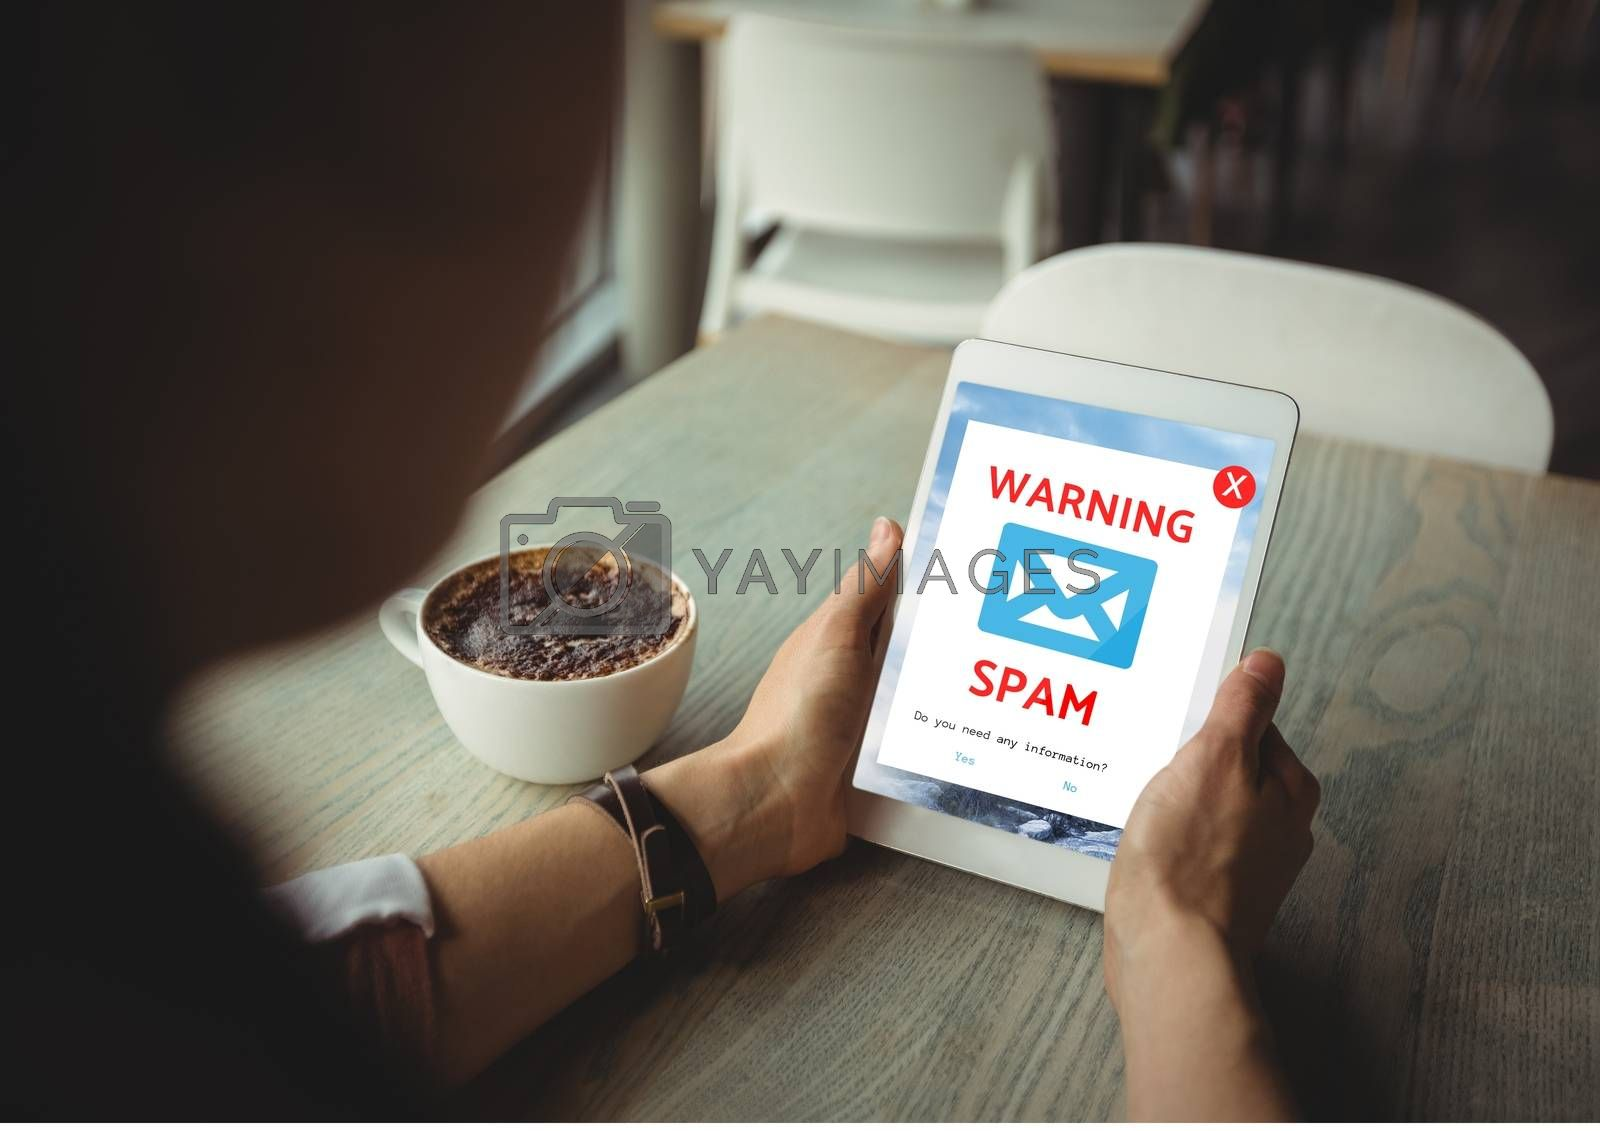 Email spam on the screen by Wavebreakmedia